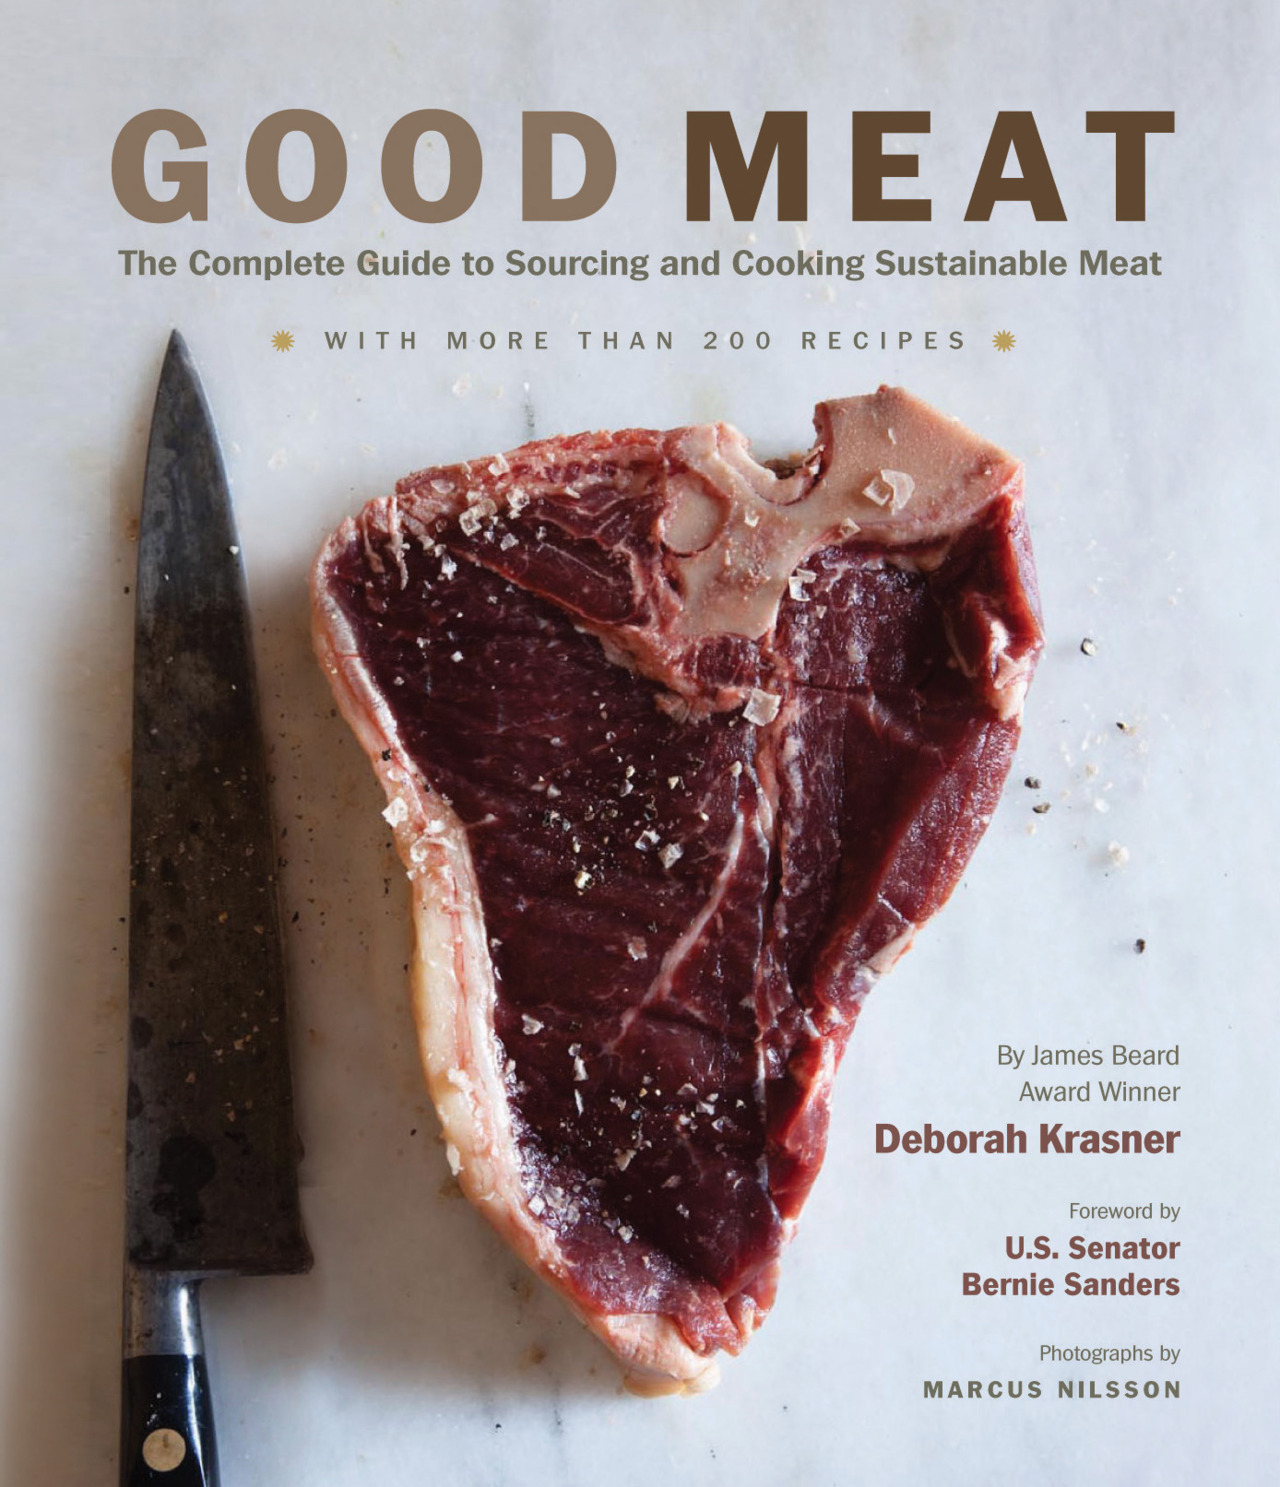 Good Meat. If you're going to eat it, eat it sustainably.